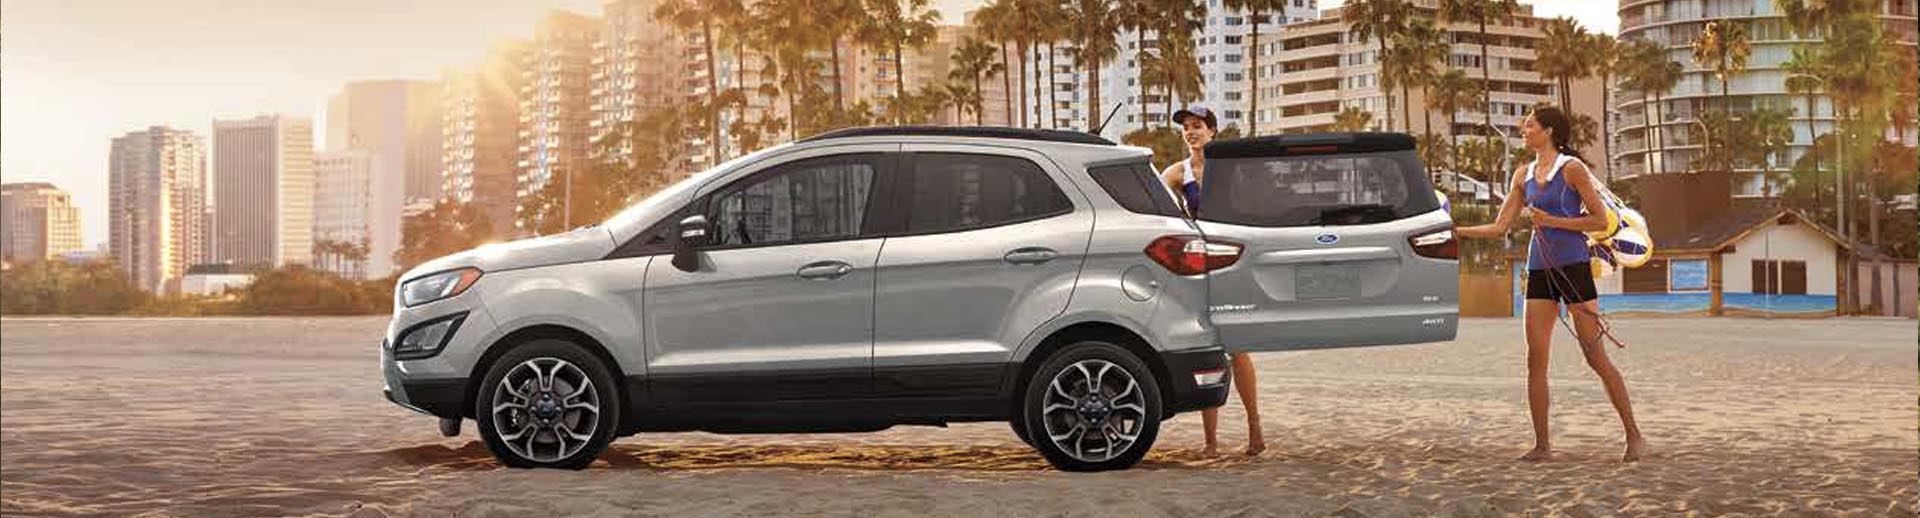 2020 Ford EcoSport Lifestyle Photo